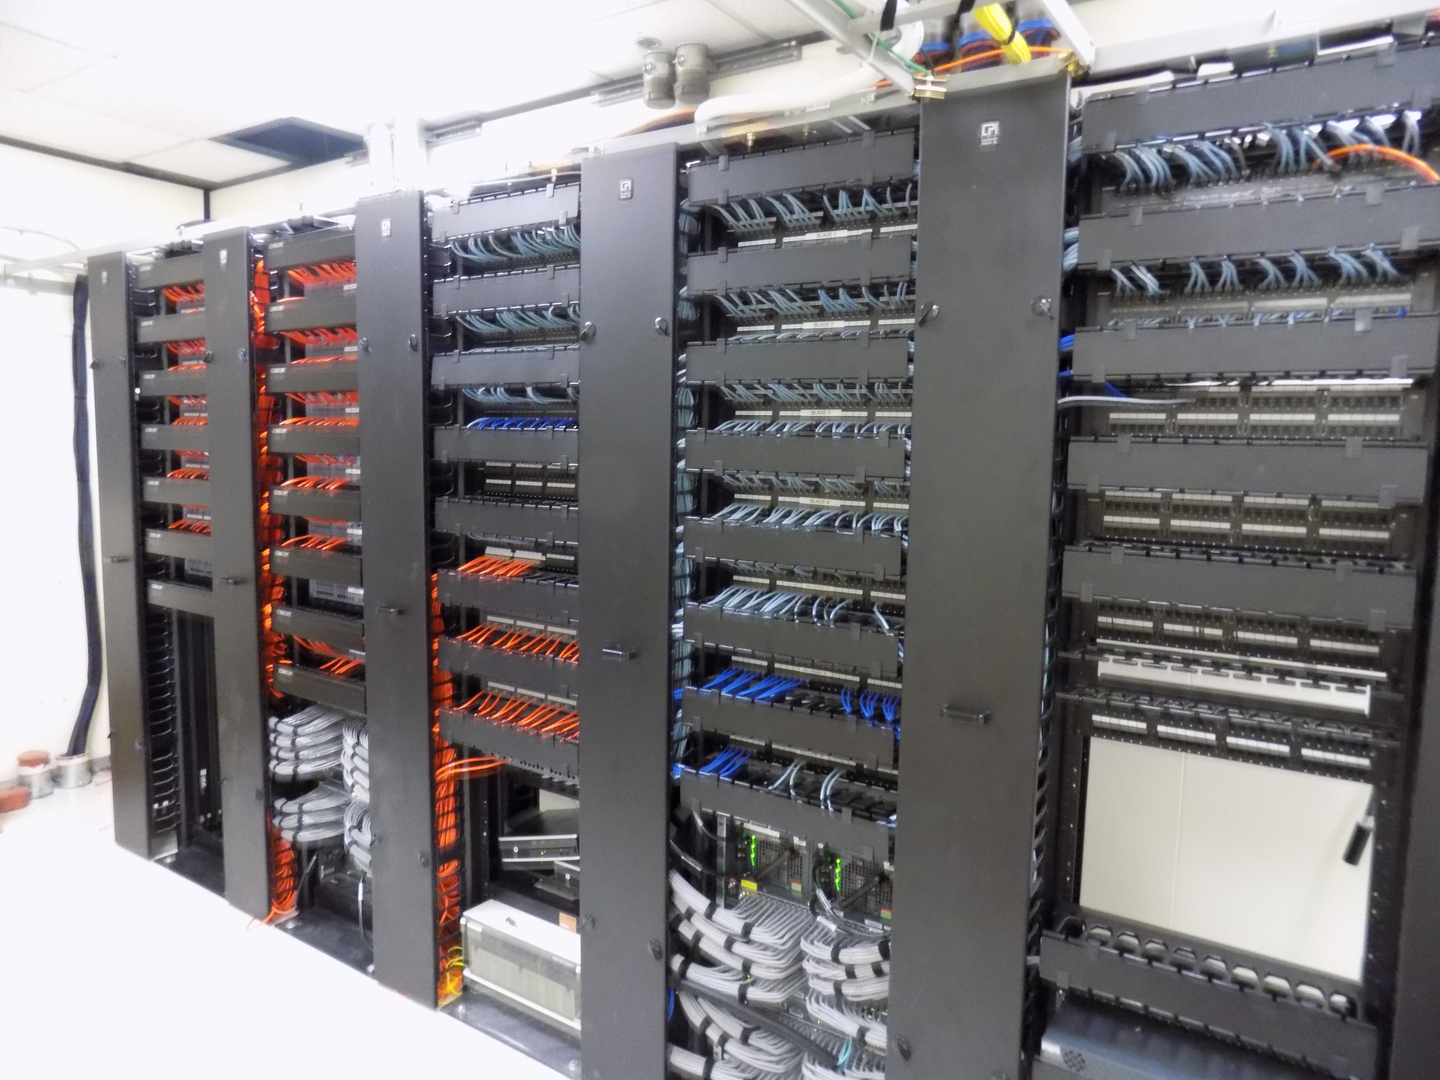 Clearnet Communications Structured Cabling The Choice Is Clear Wiring Technology Capabilities Credentials